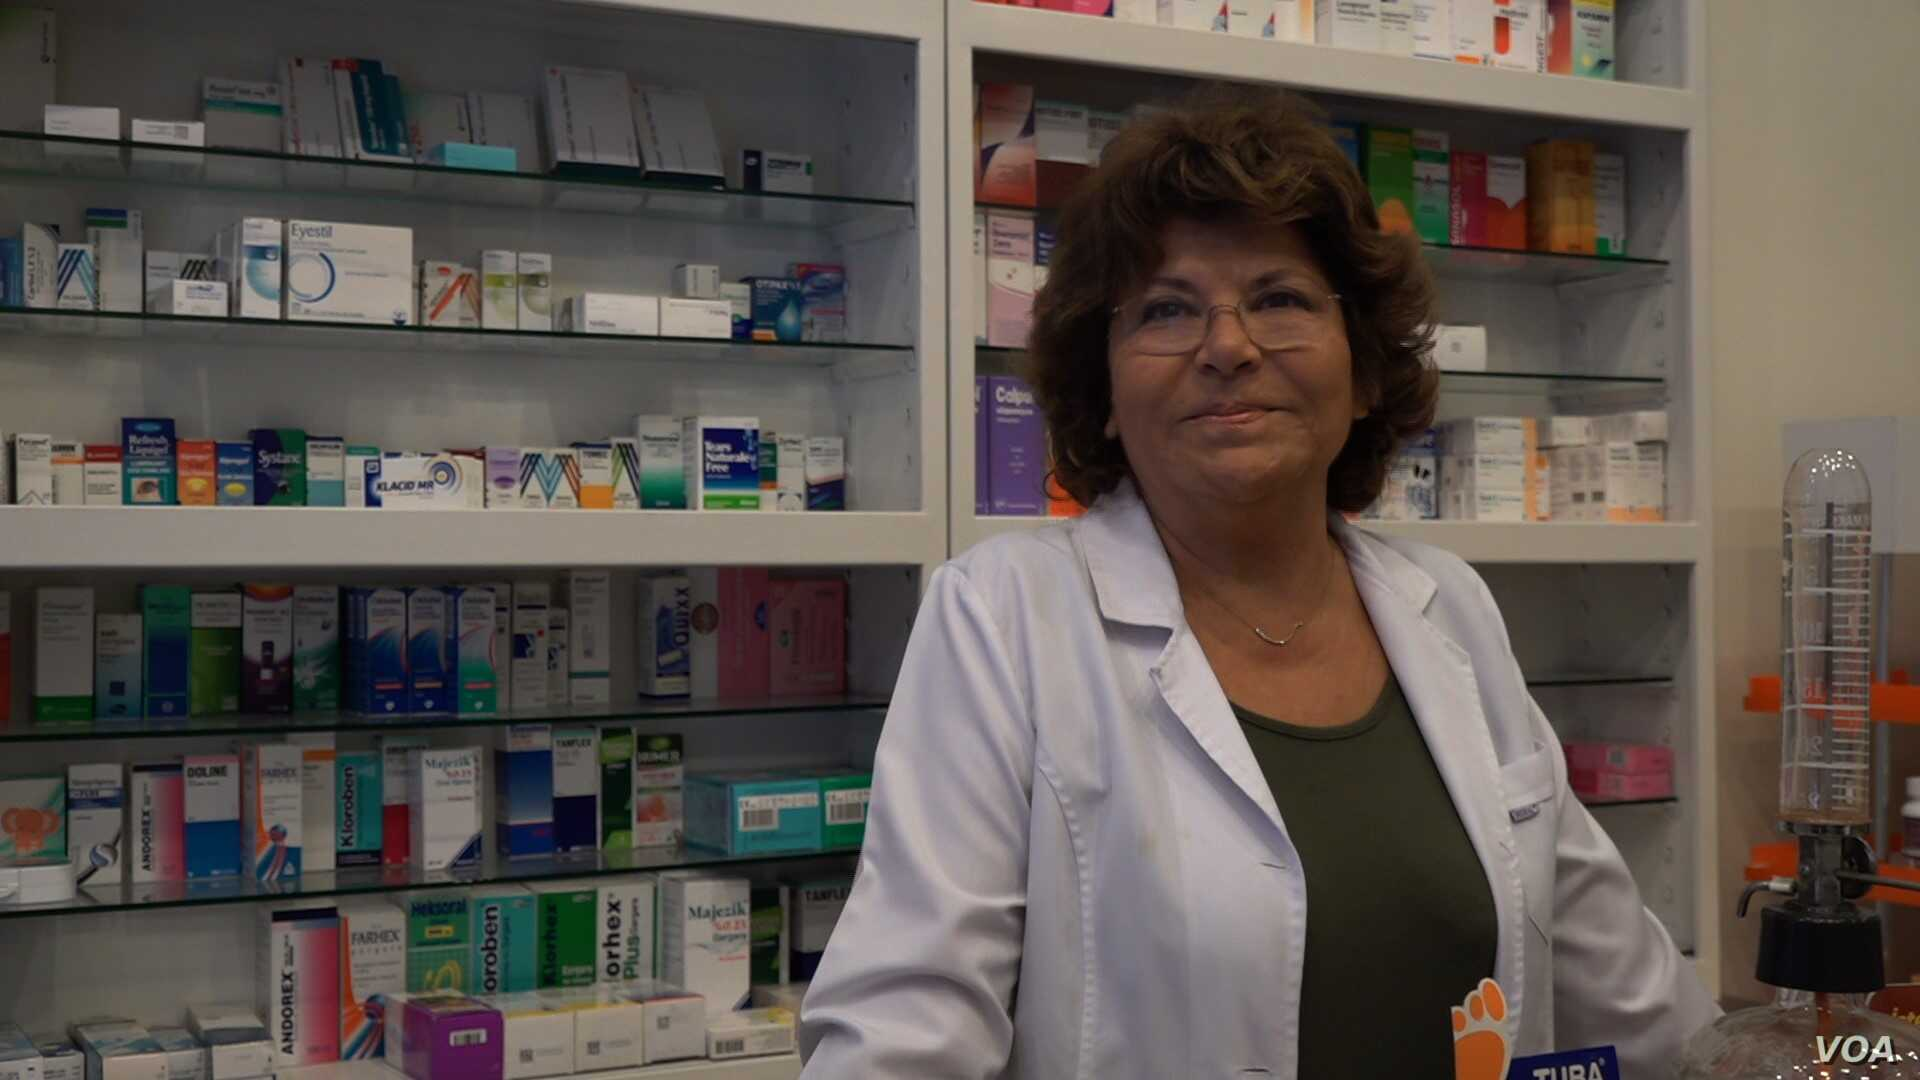 Pharmacist owner Guliz Kaptan worries about Turkey's heavy dependence on imported medicine amid the nation's currency crisis. (D. Jones/VOA News)